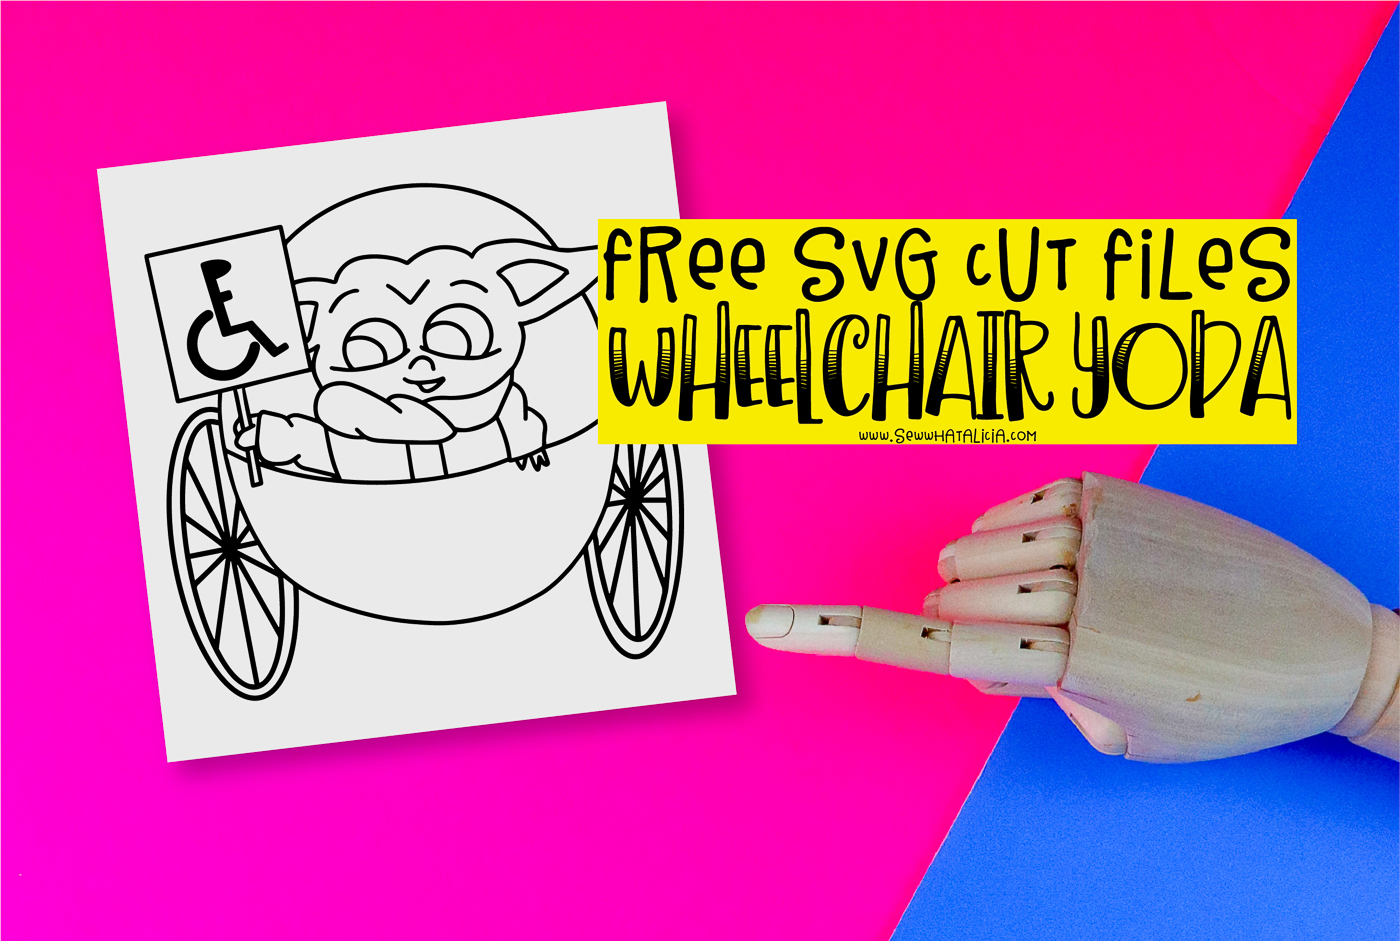 Free Wheelchair Access Car Stickers Svg Files Sew What Alicia